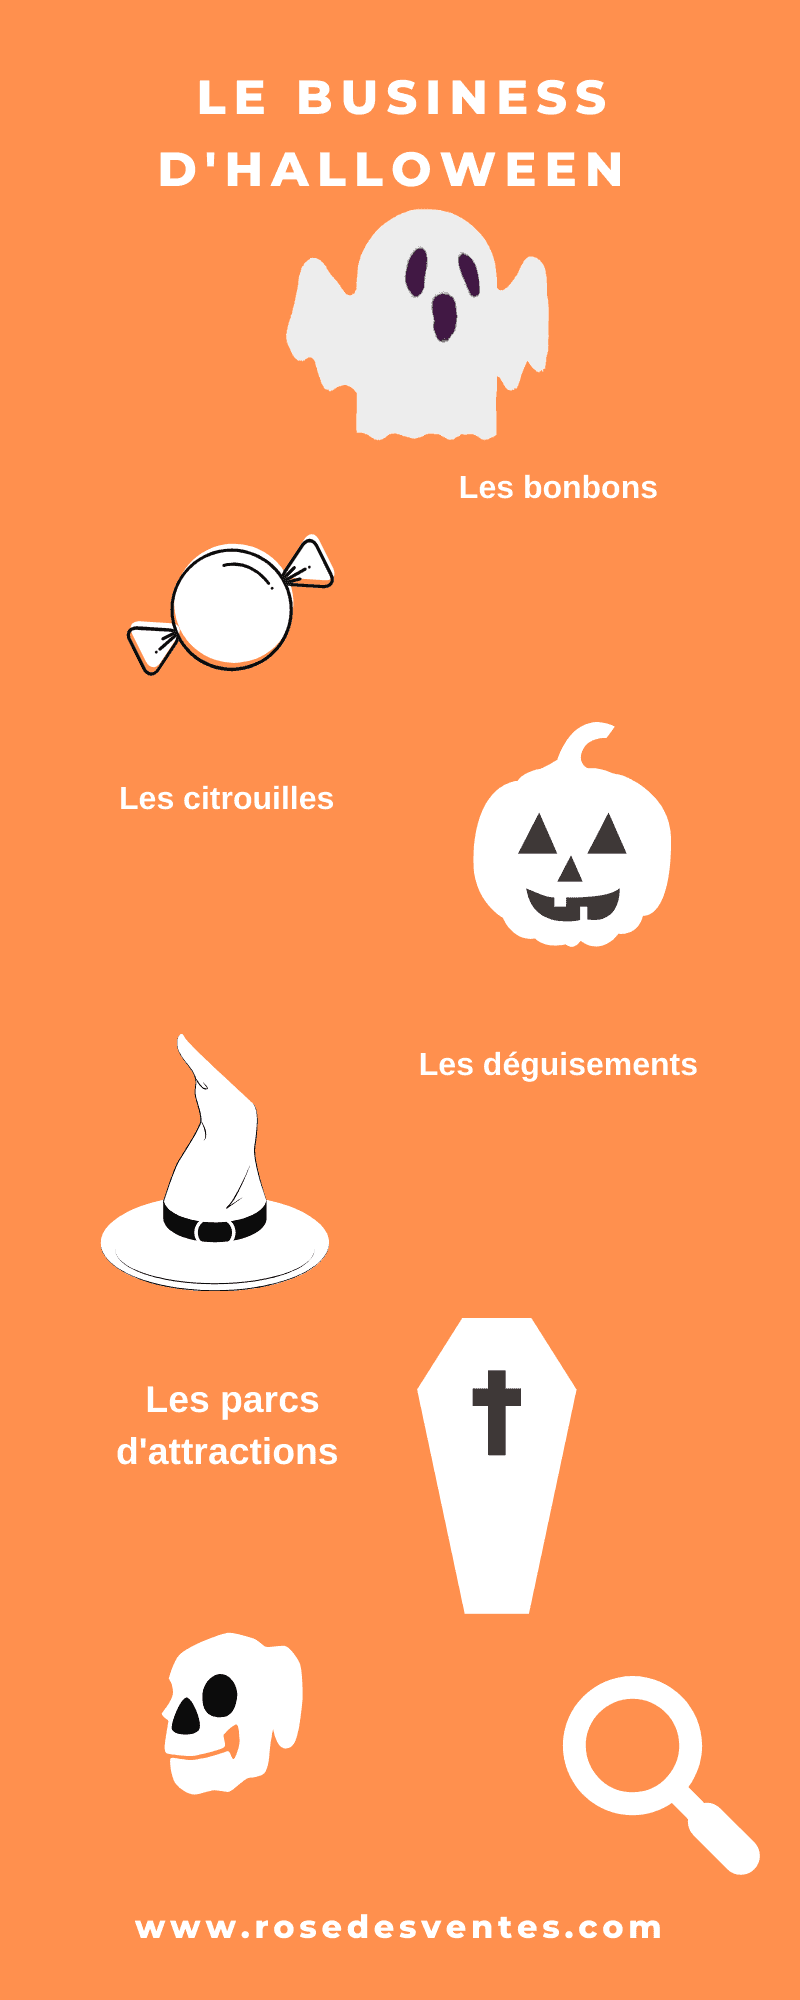 Infographie sur le business d'Halloween